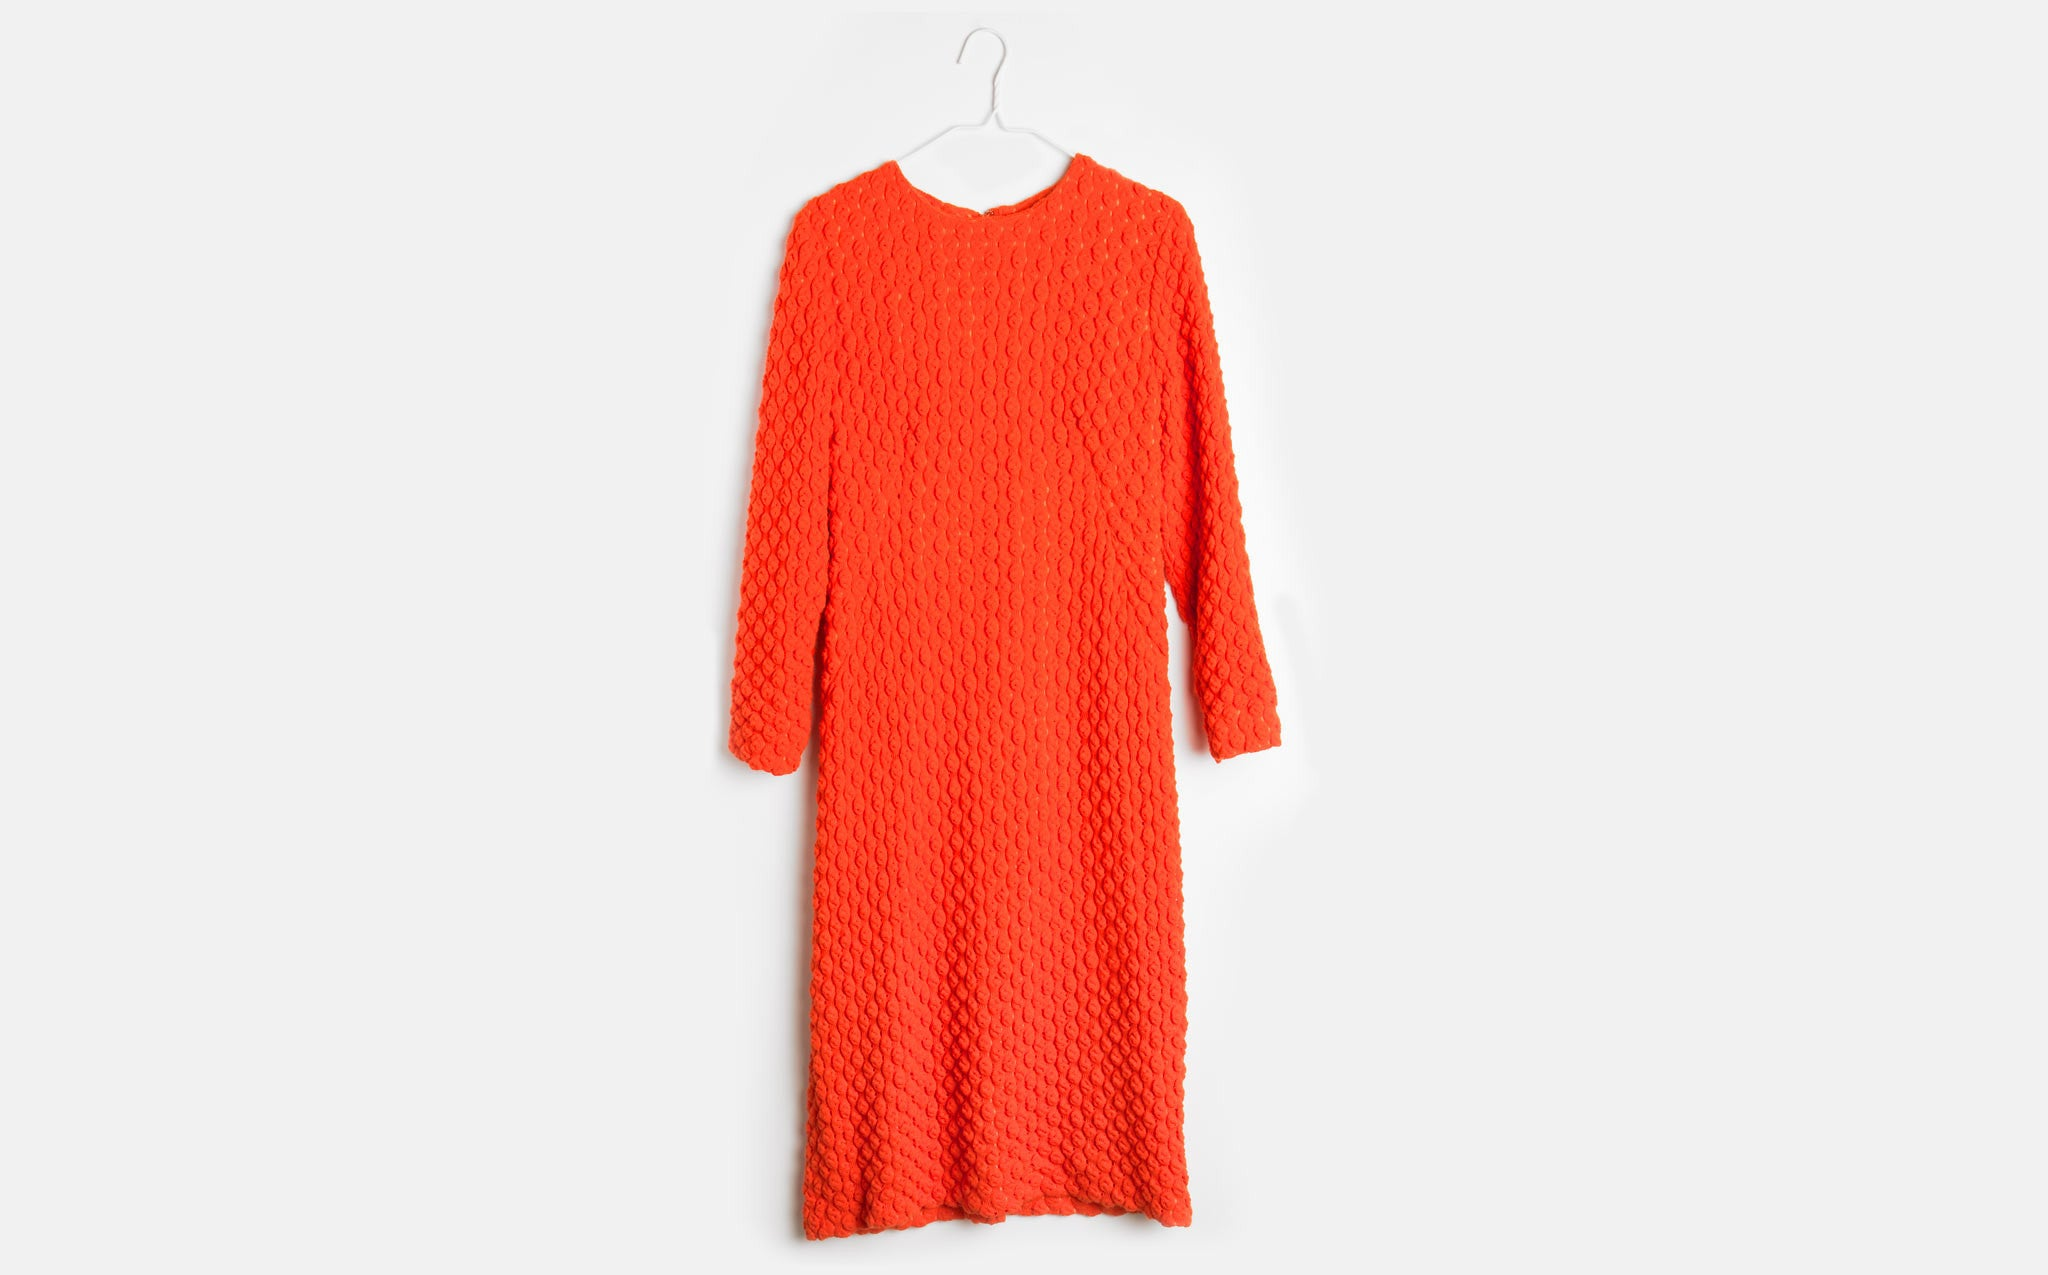 Popcorn Knit Dress kindred black